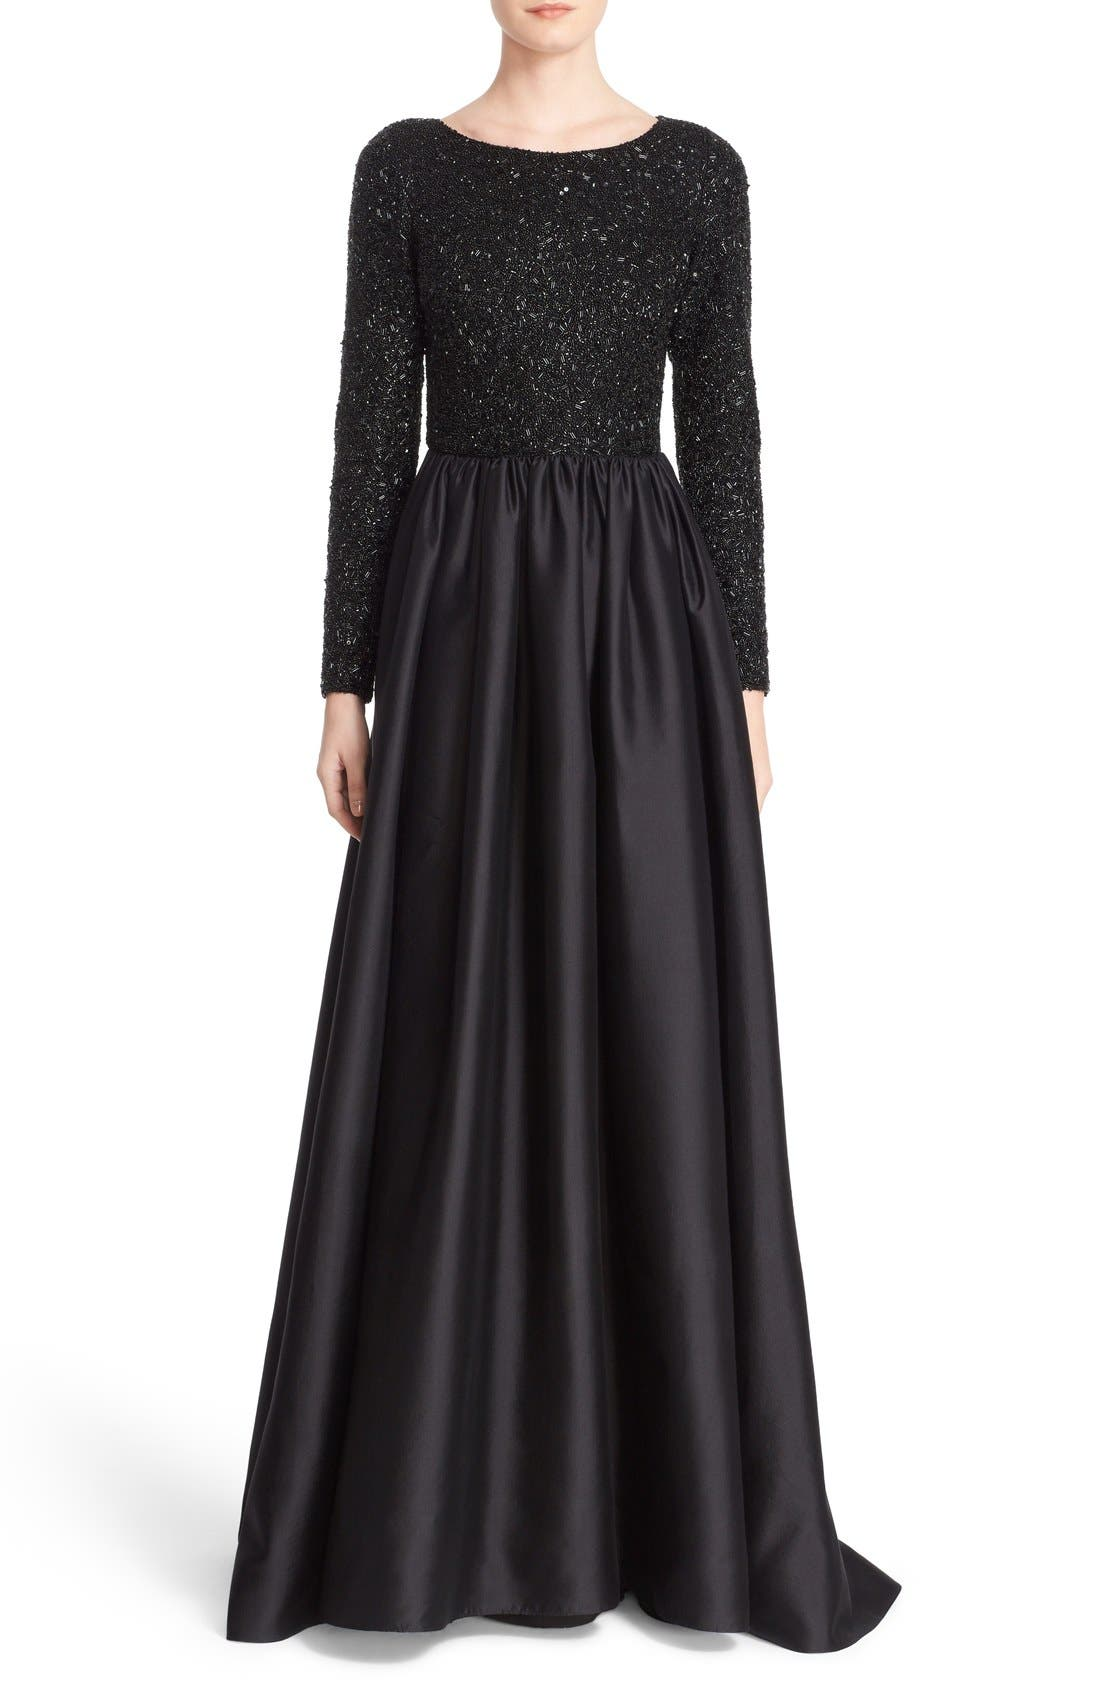 Alternate Image 1 Selected - Badgley Mischka Couture Embellished Bodice Long Sleeve Gown